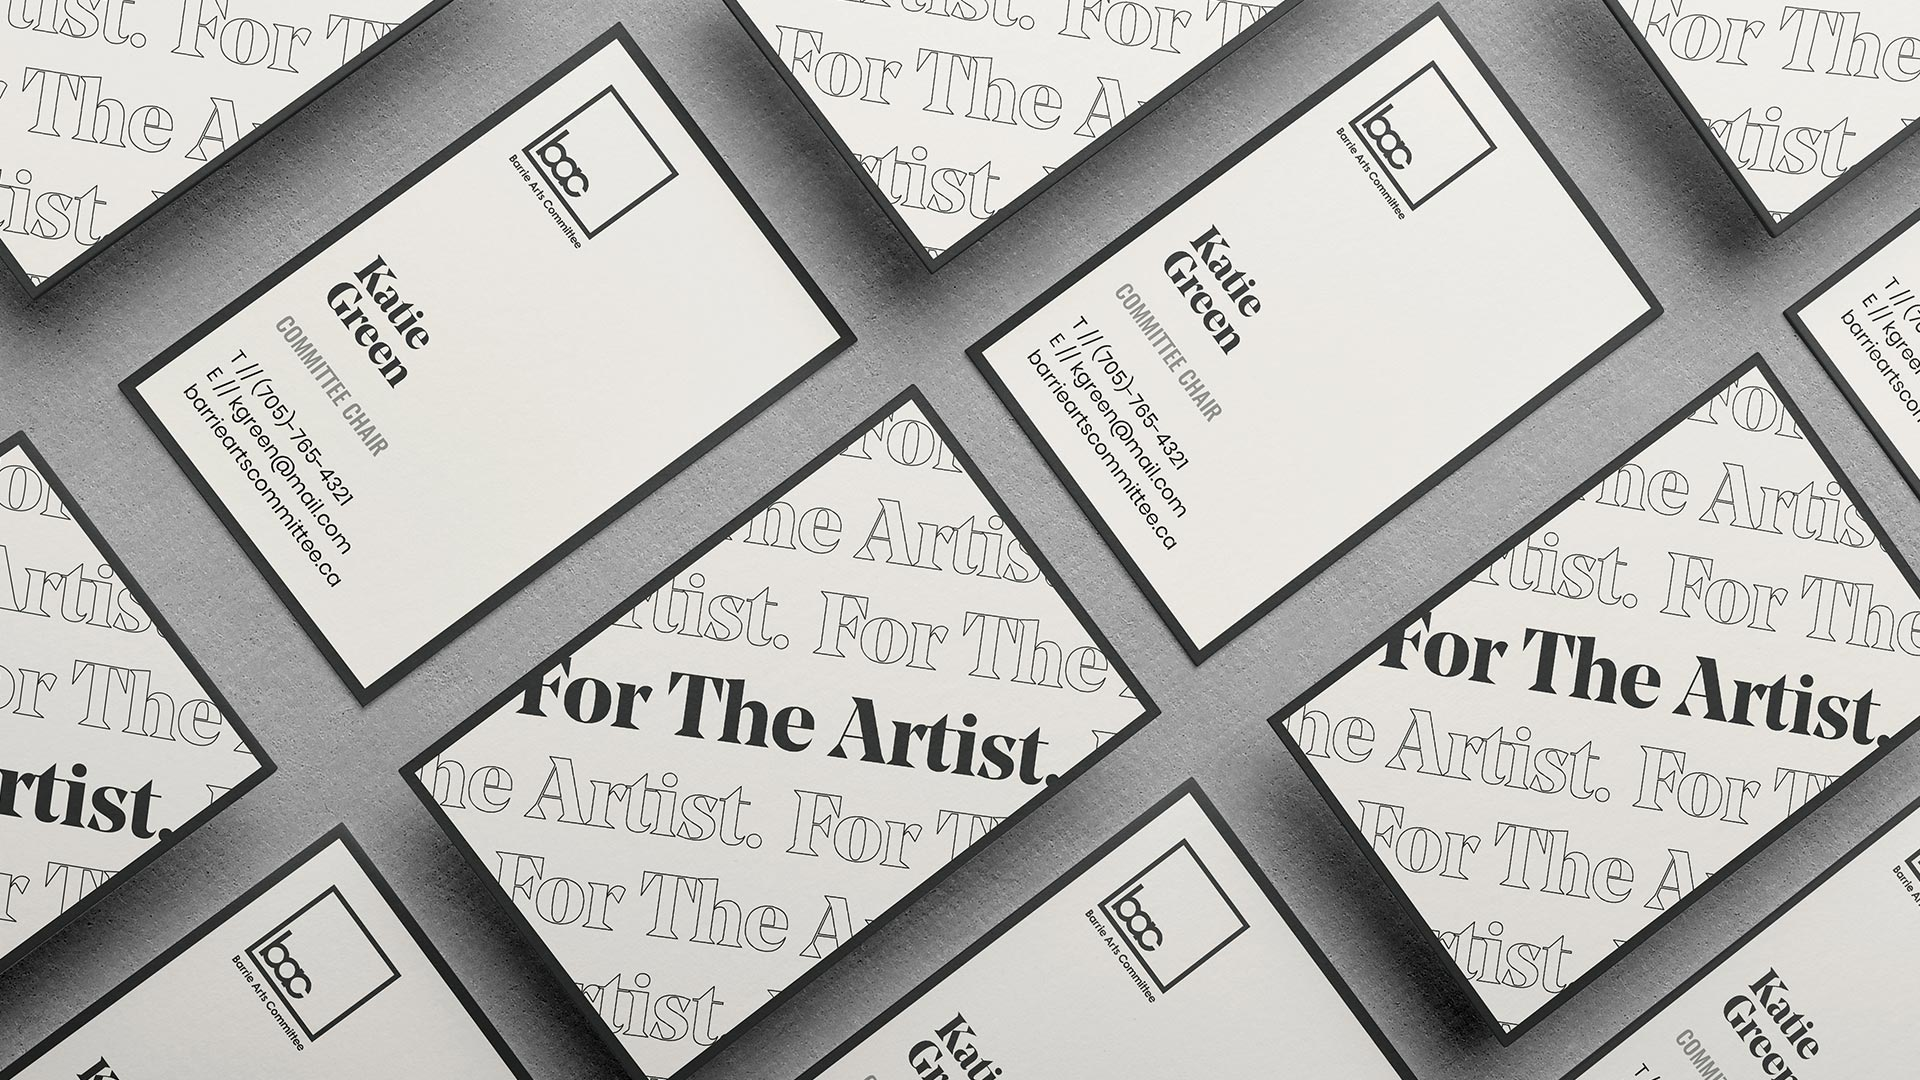 barrie arts committee business cards